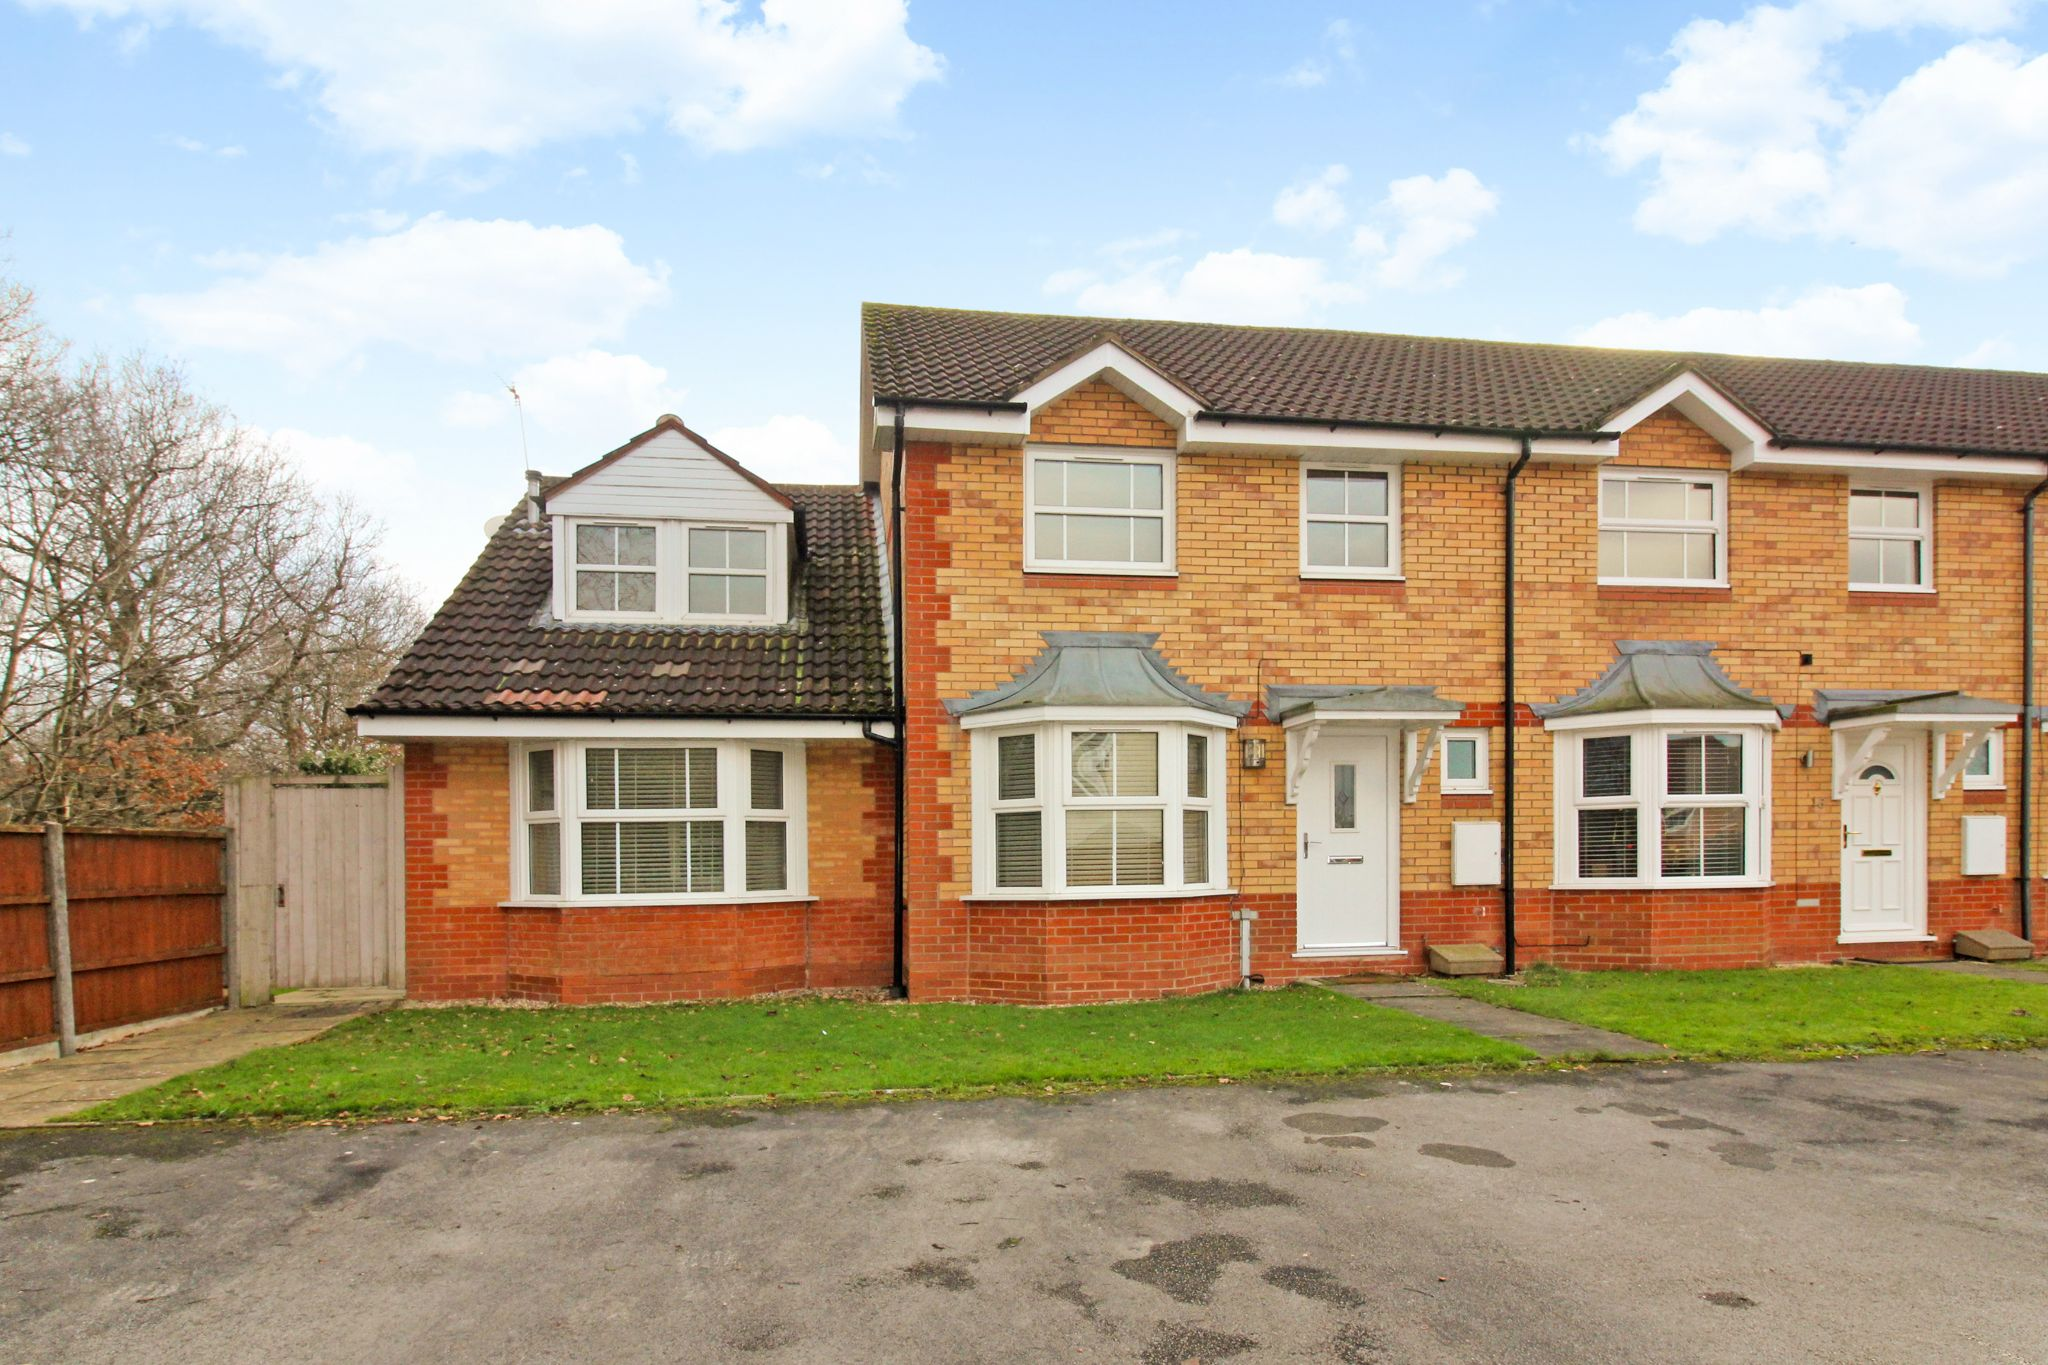 3 bedroom end terraced house SSTC in Solihull - Photograph 1.